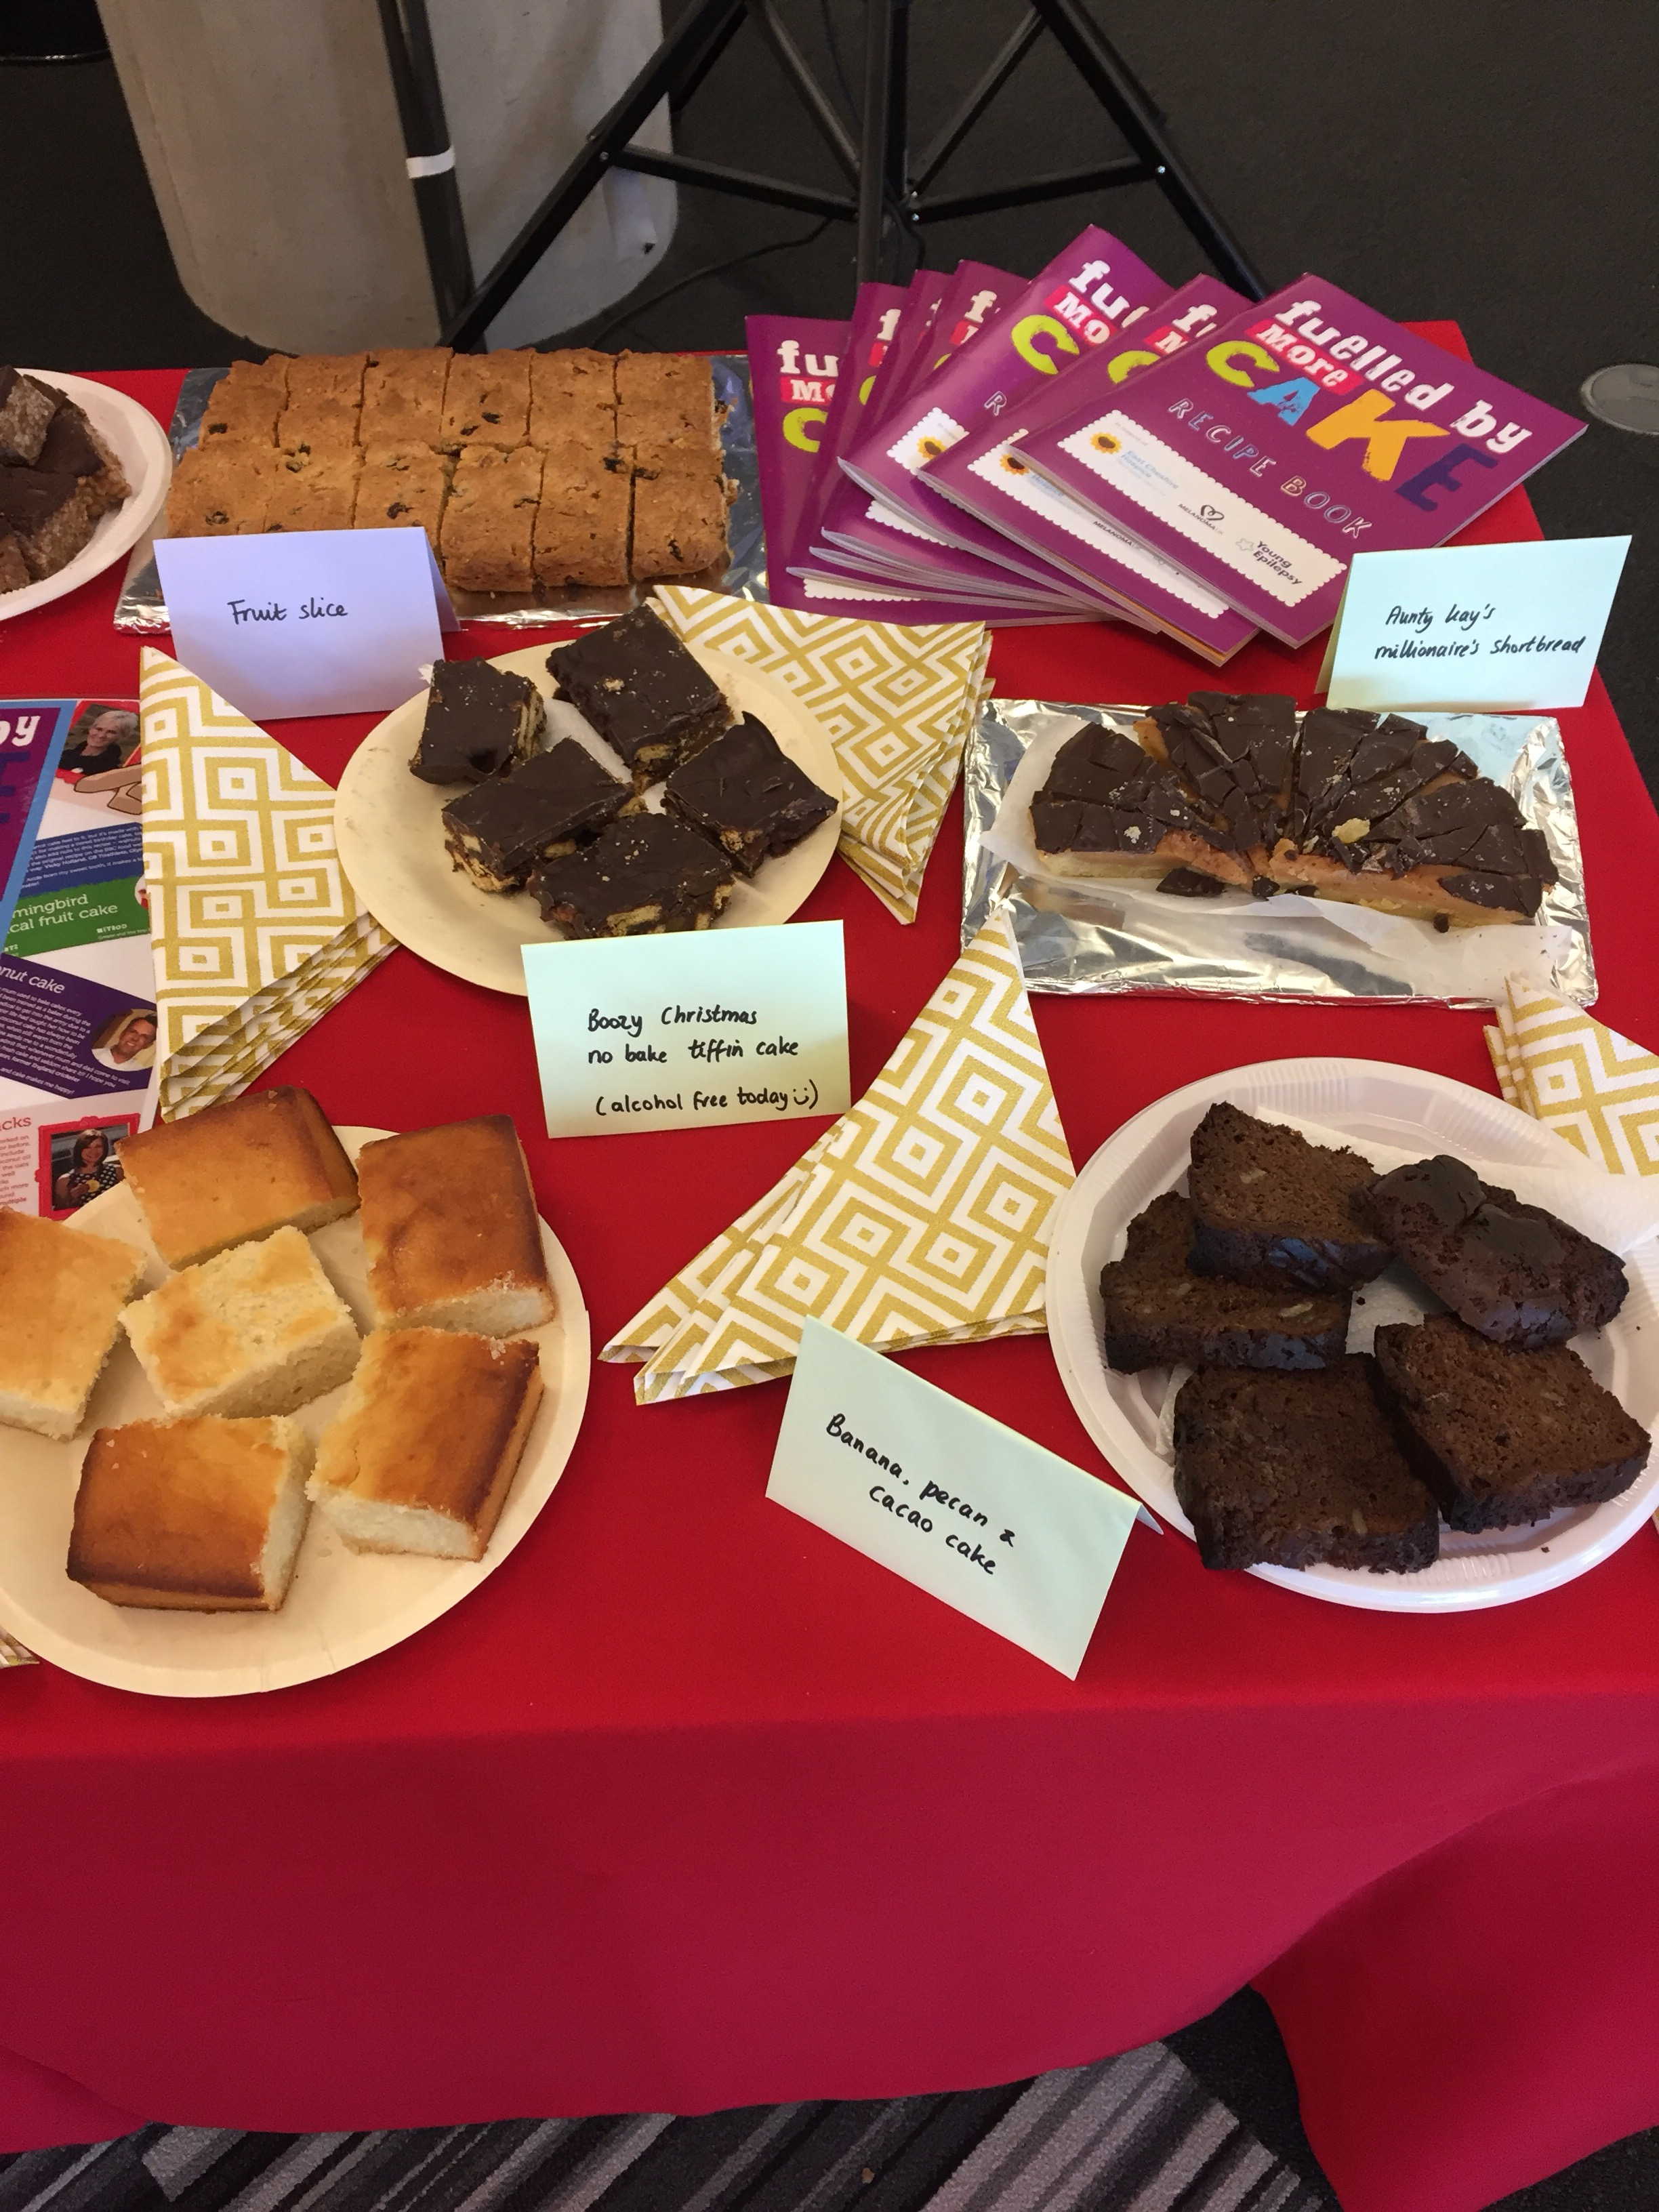 Cake and book sales at work